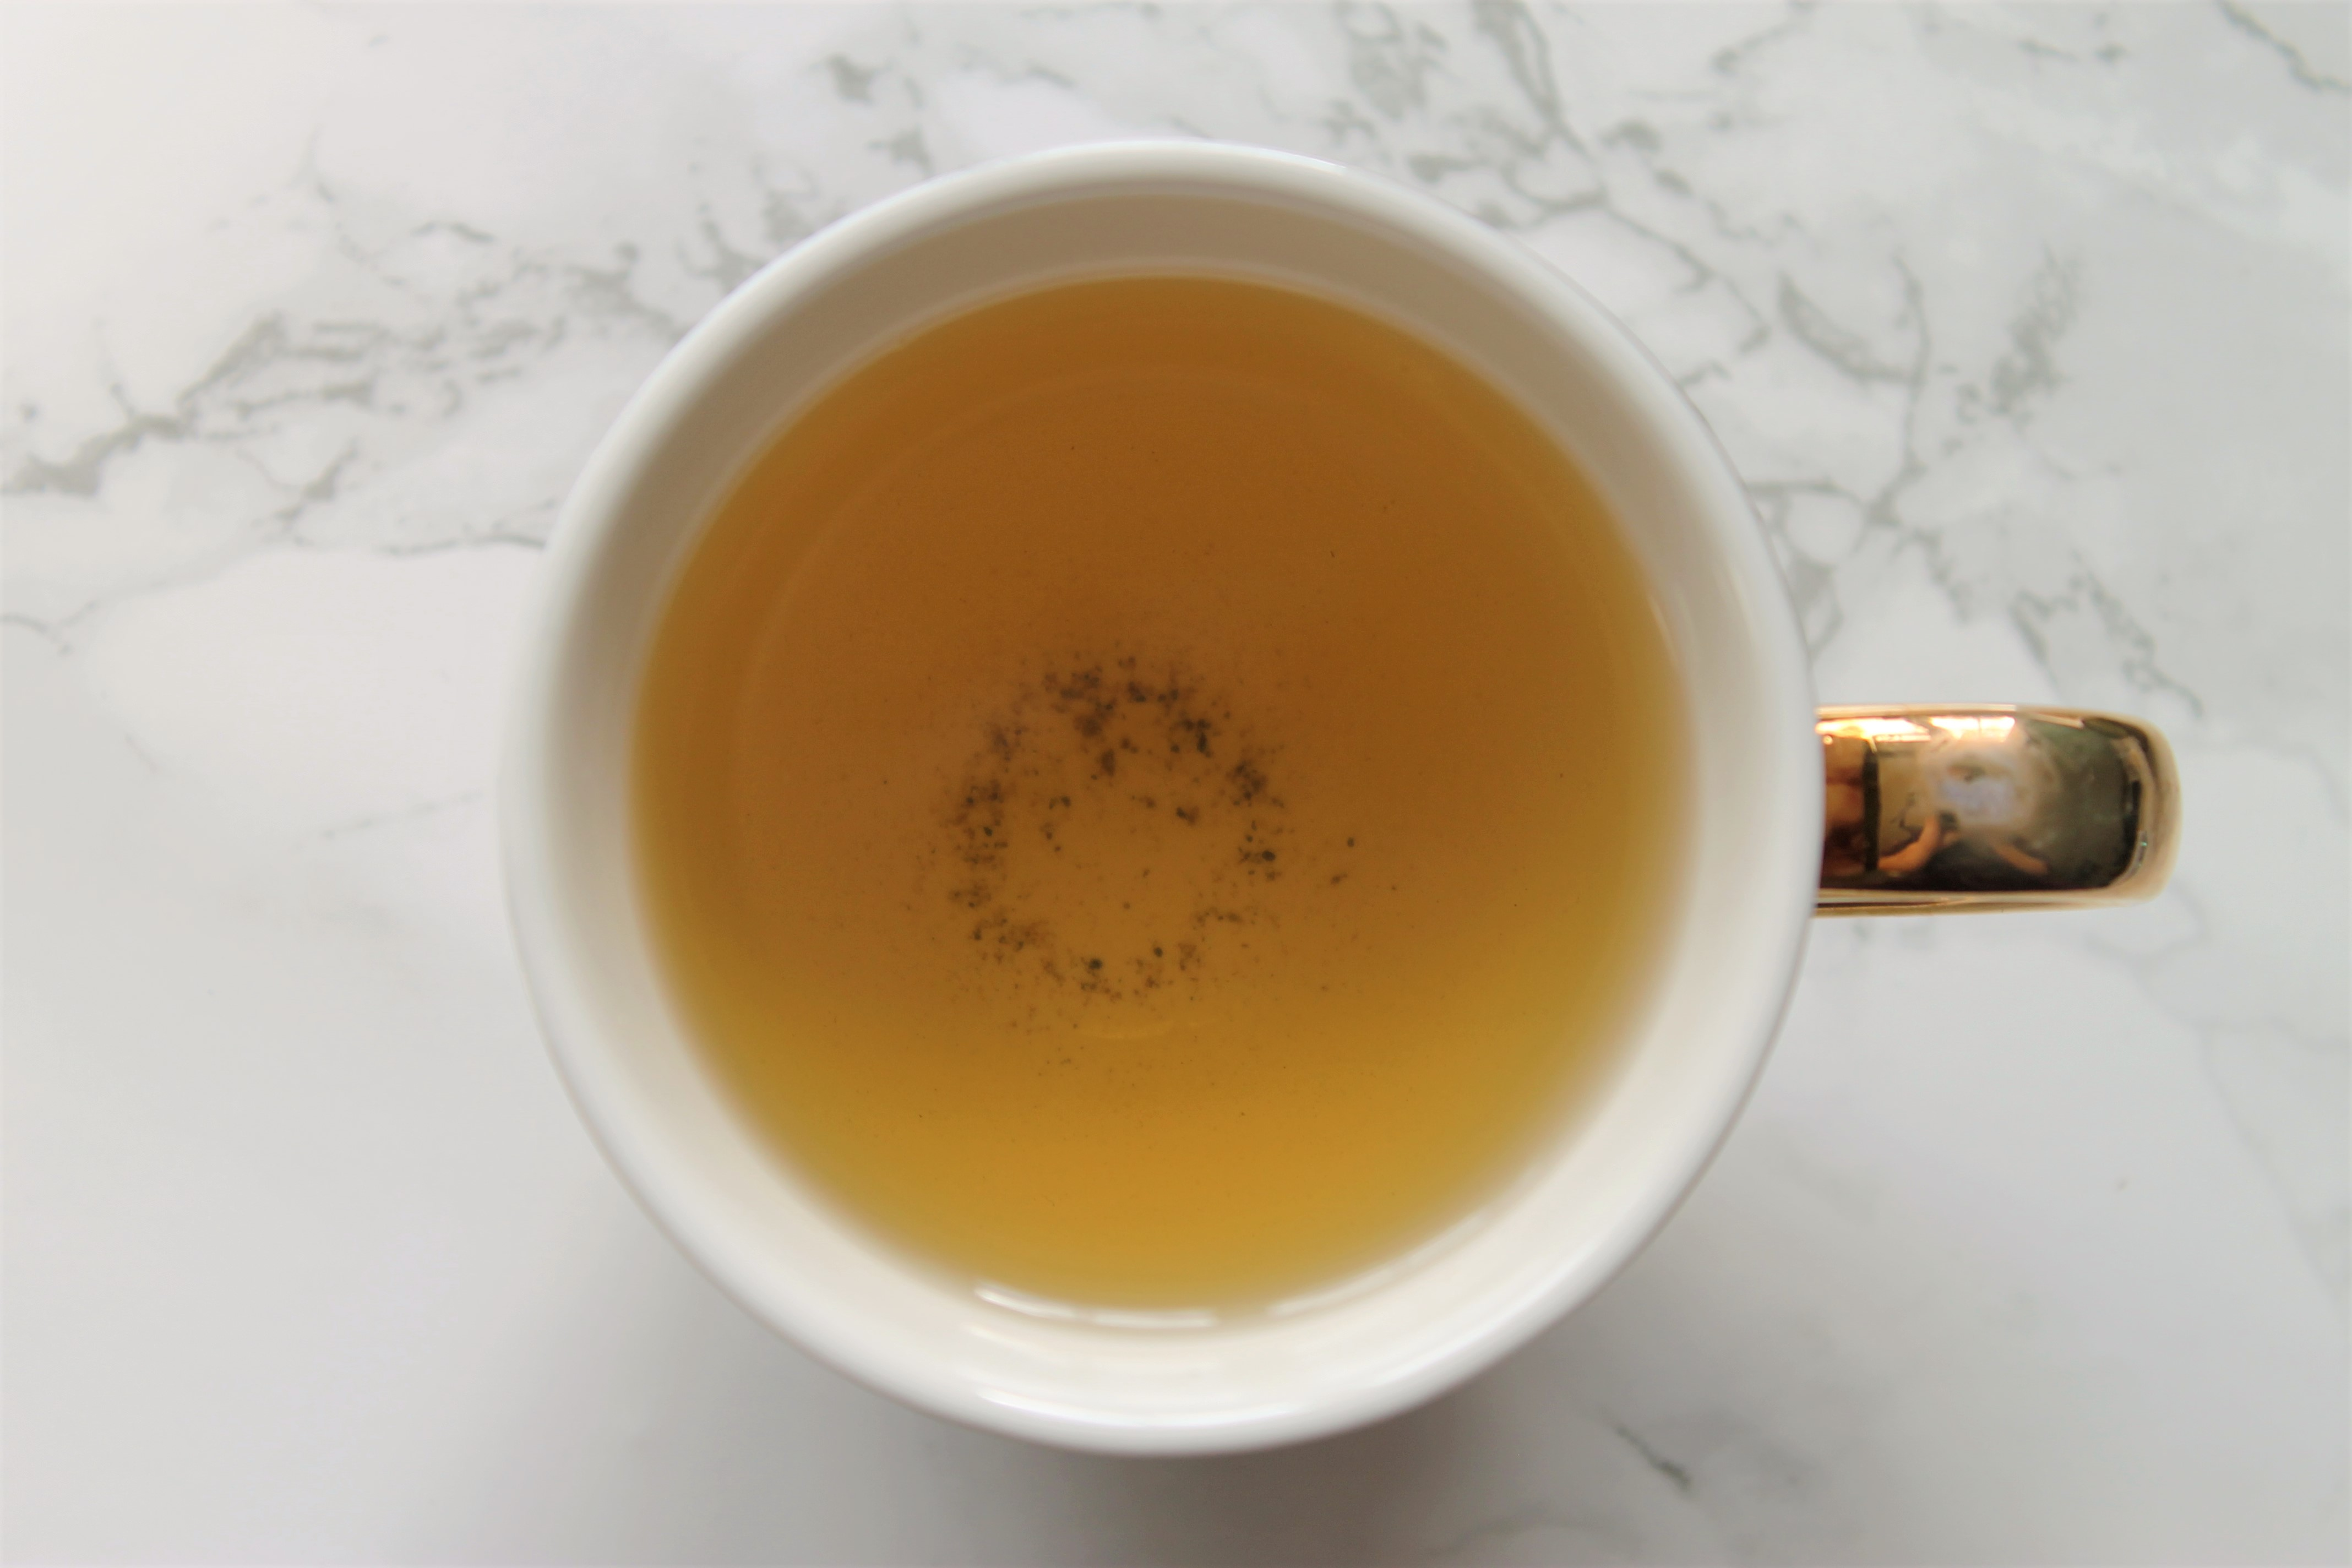 basilur white moon milk oolong in teacup